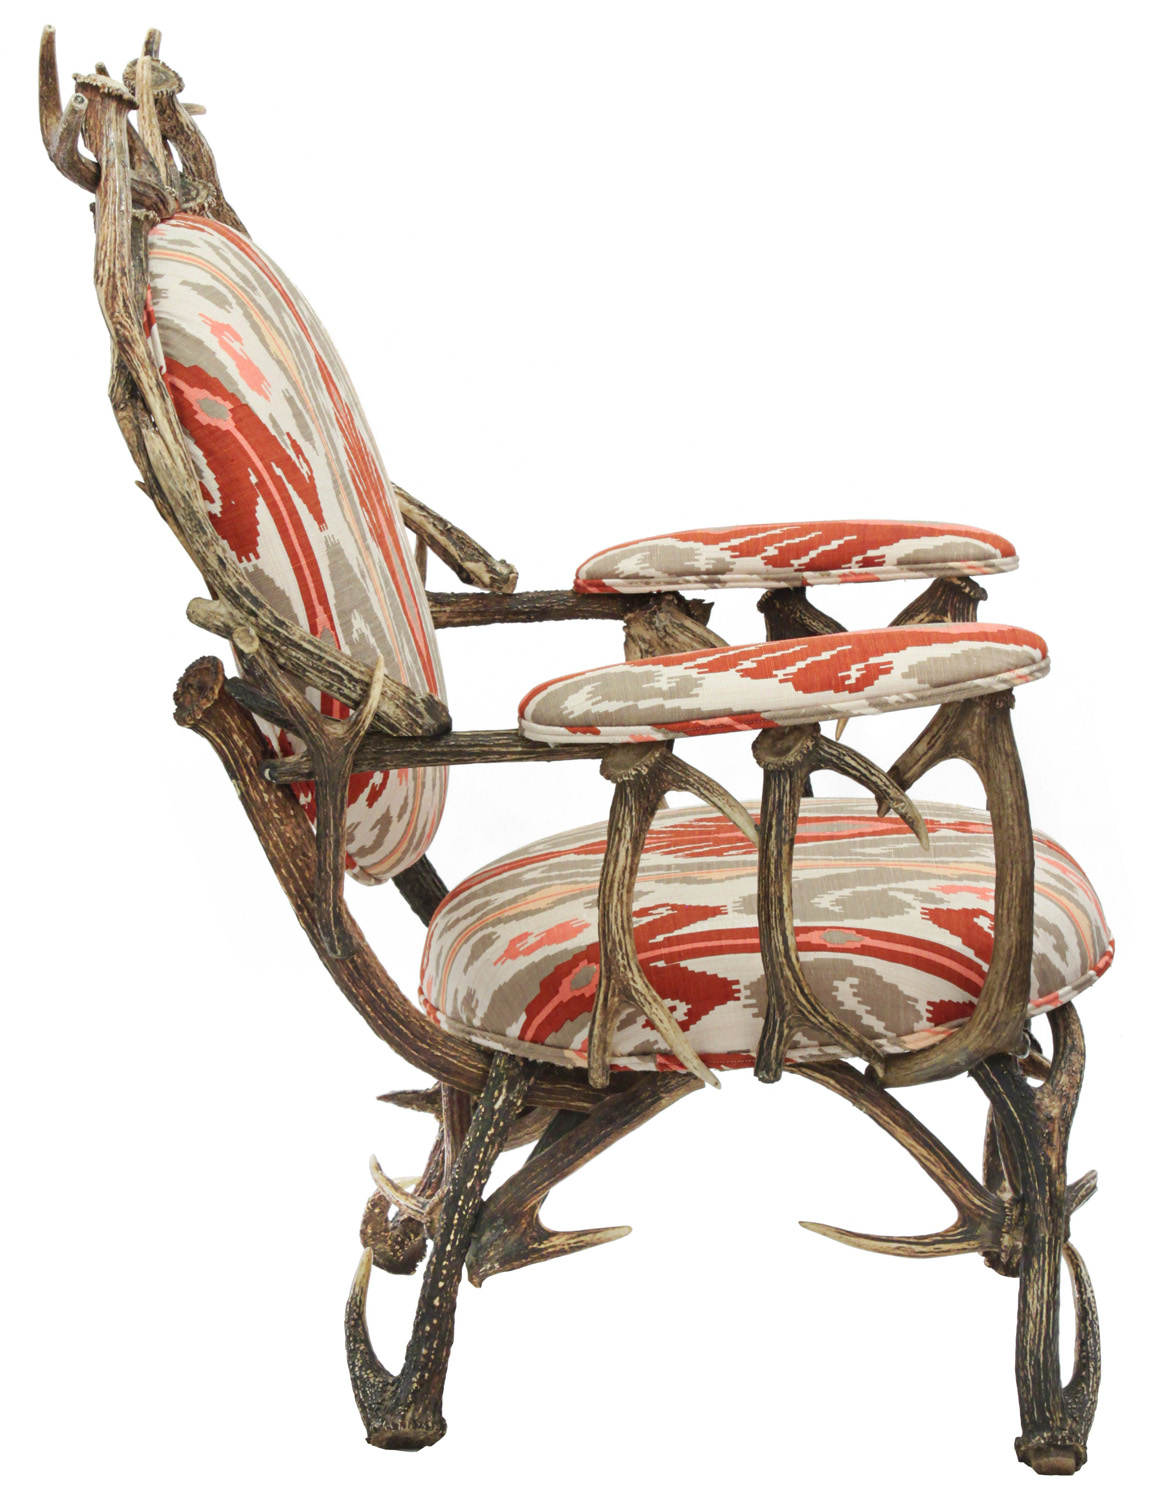 70's 75 antlers red fabric loungechairs145 detail2 hires.jpg